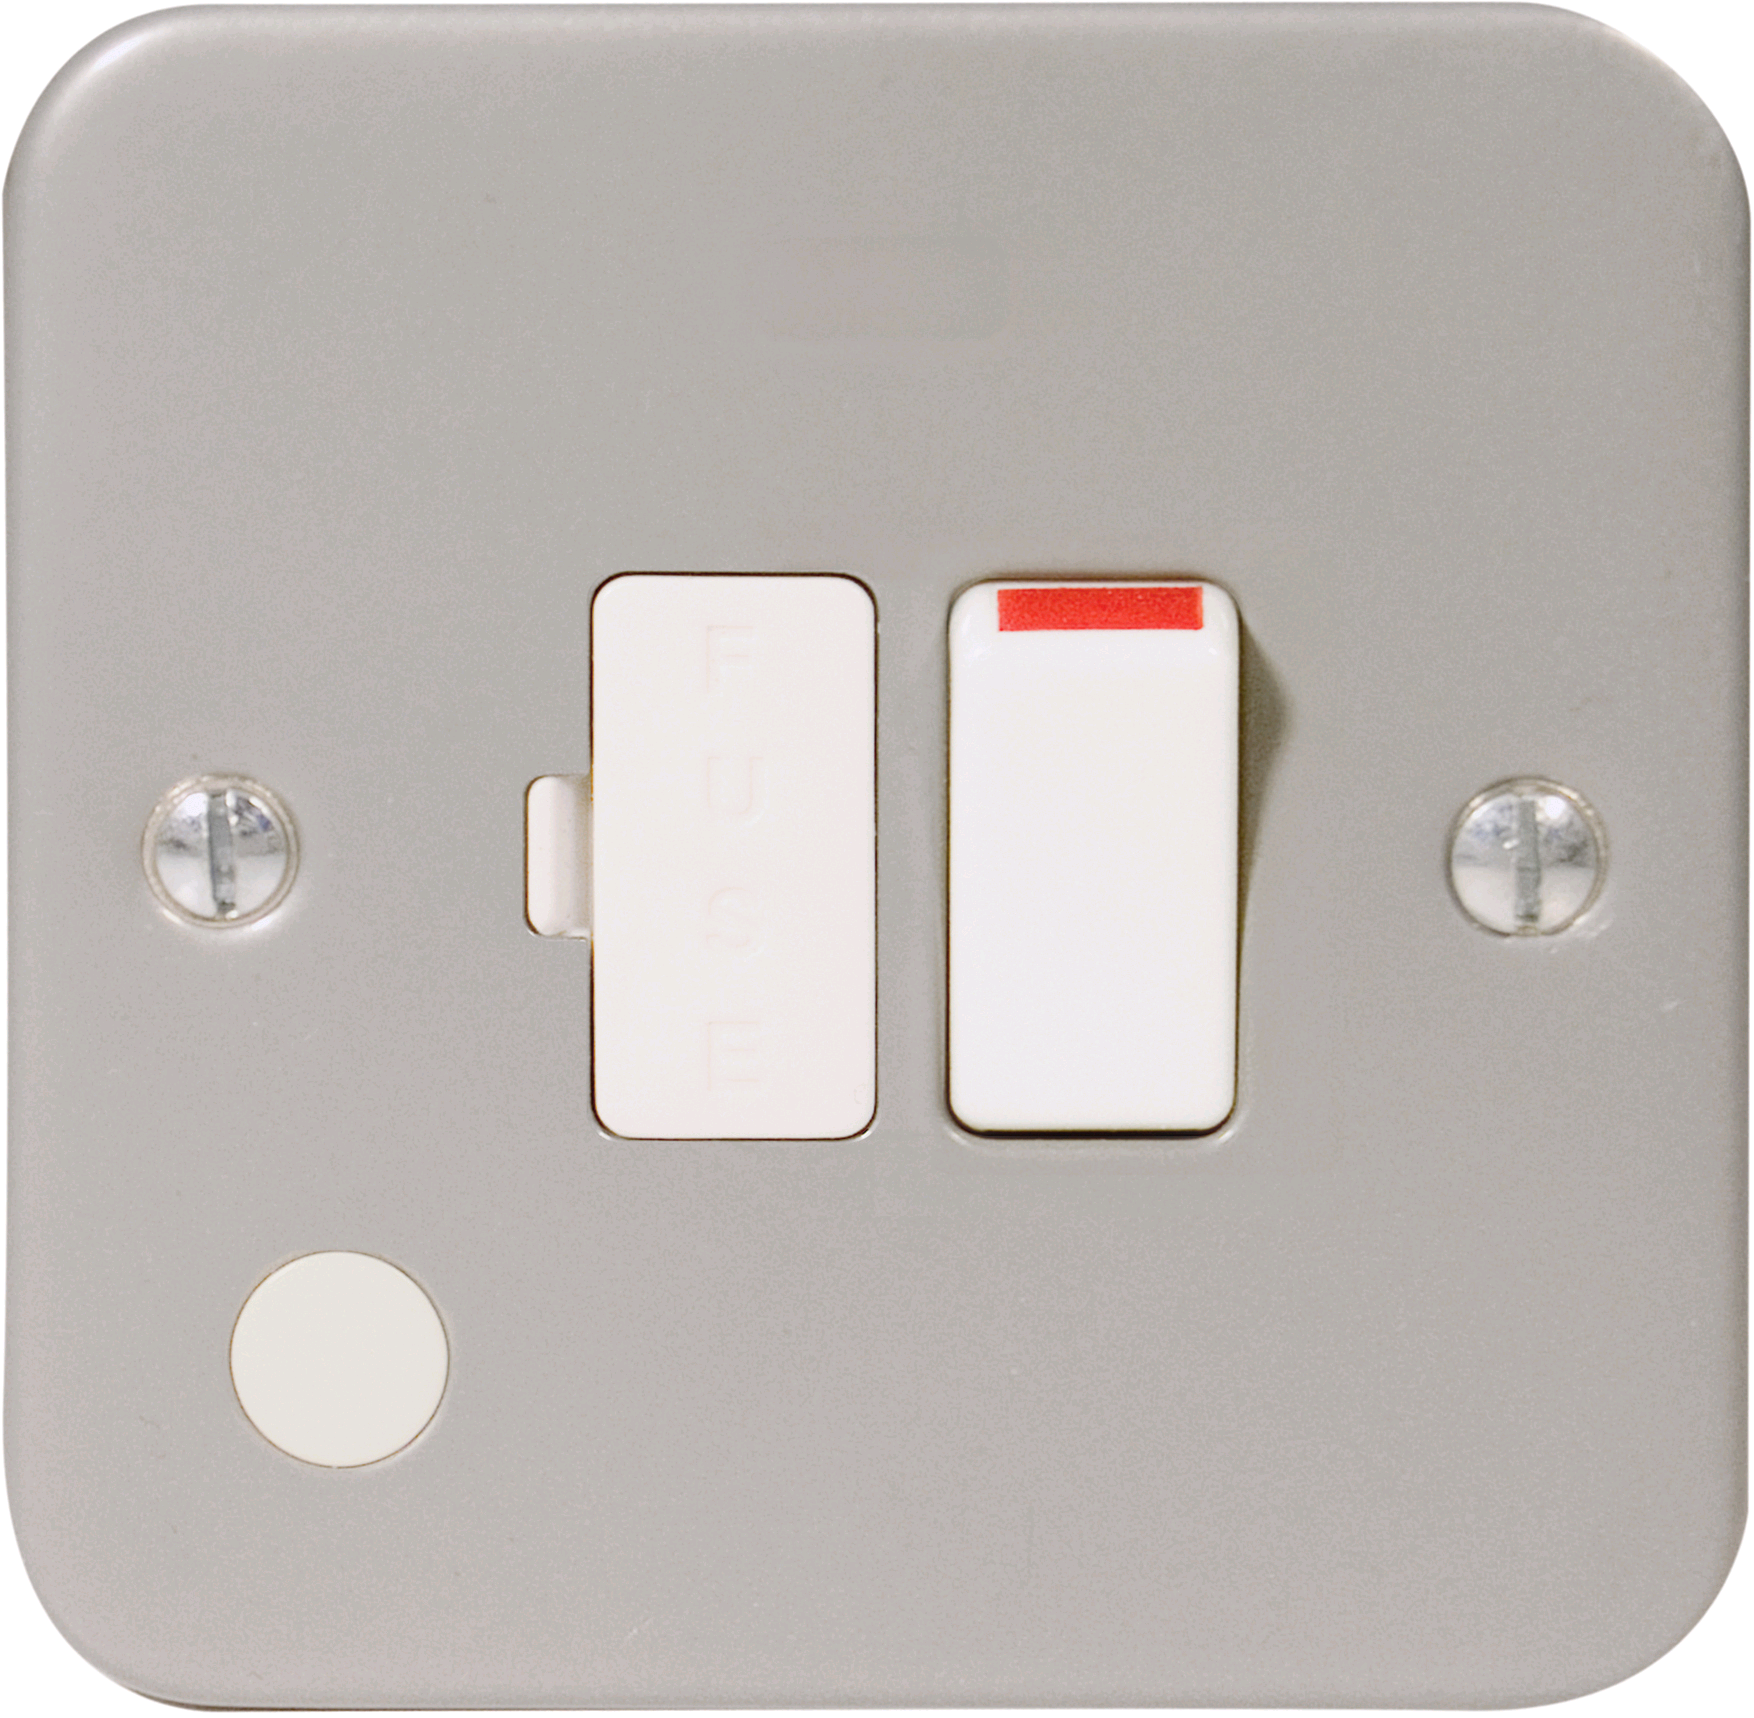 BG Metal Clad 13a Switched Fused Spur c/w Flex Outlet